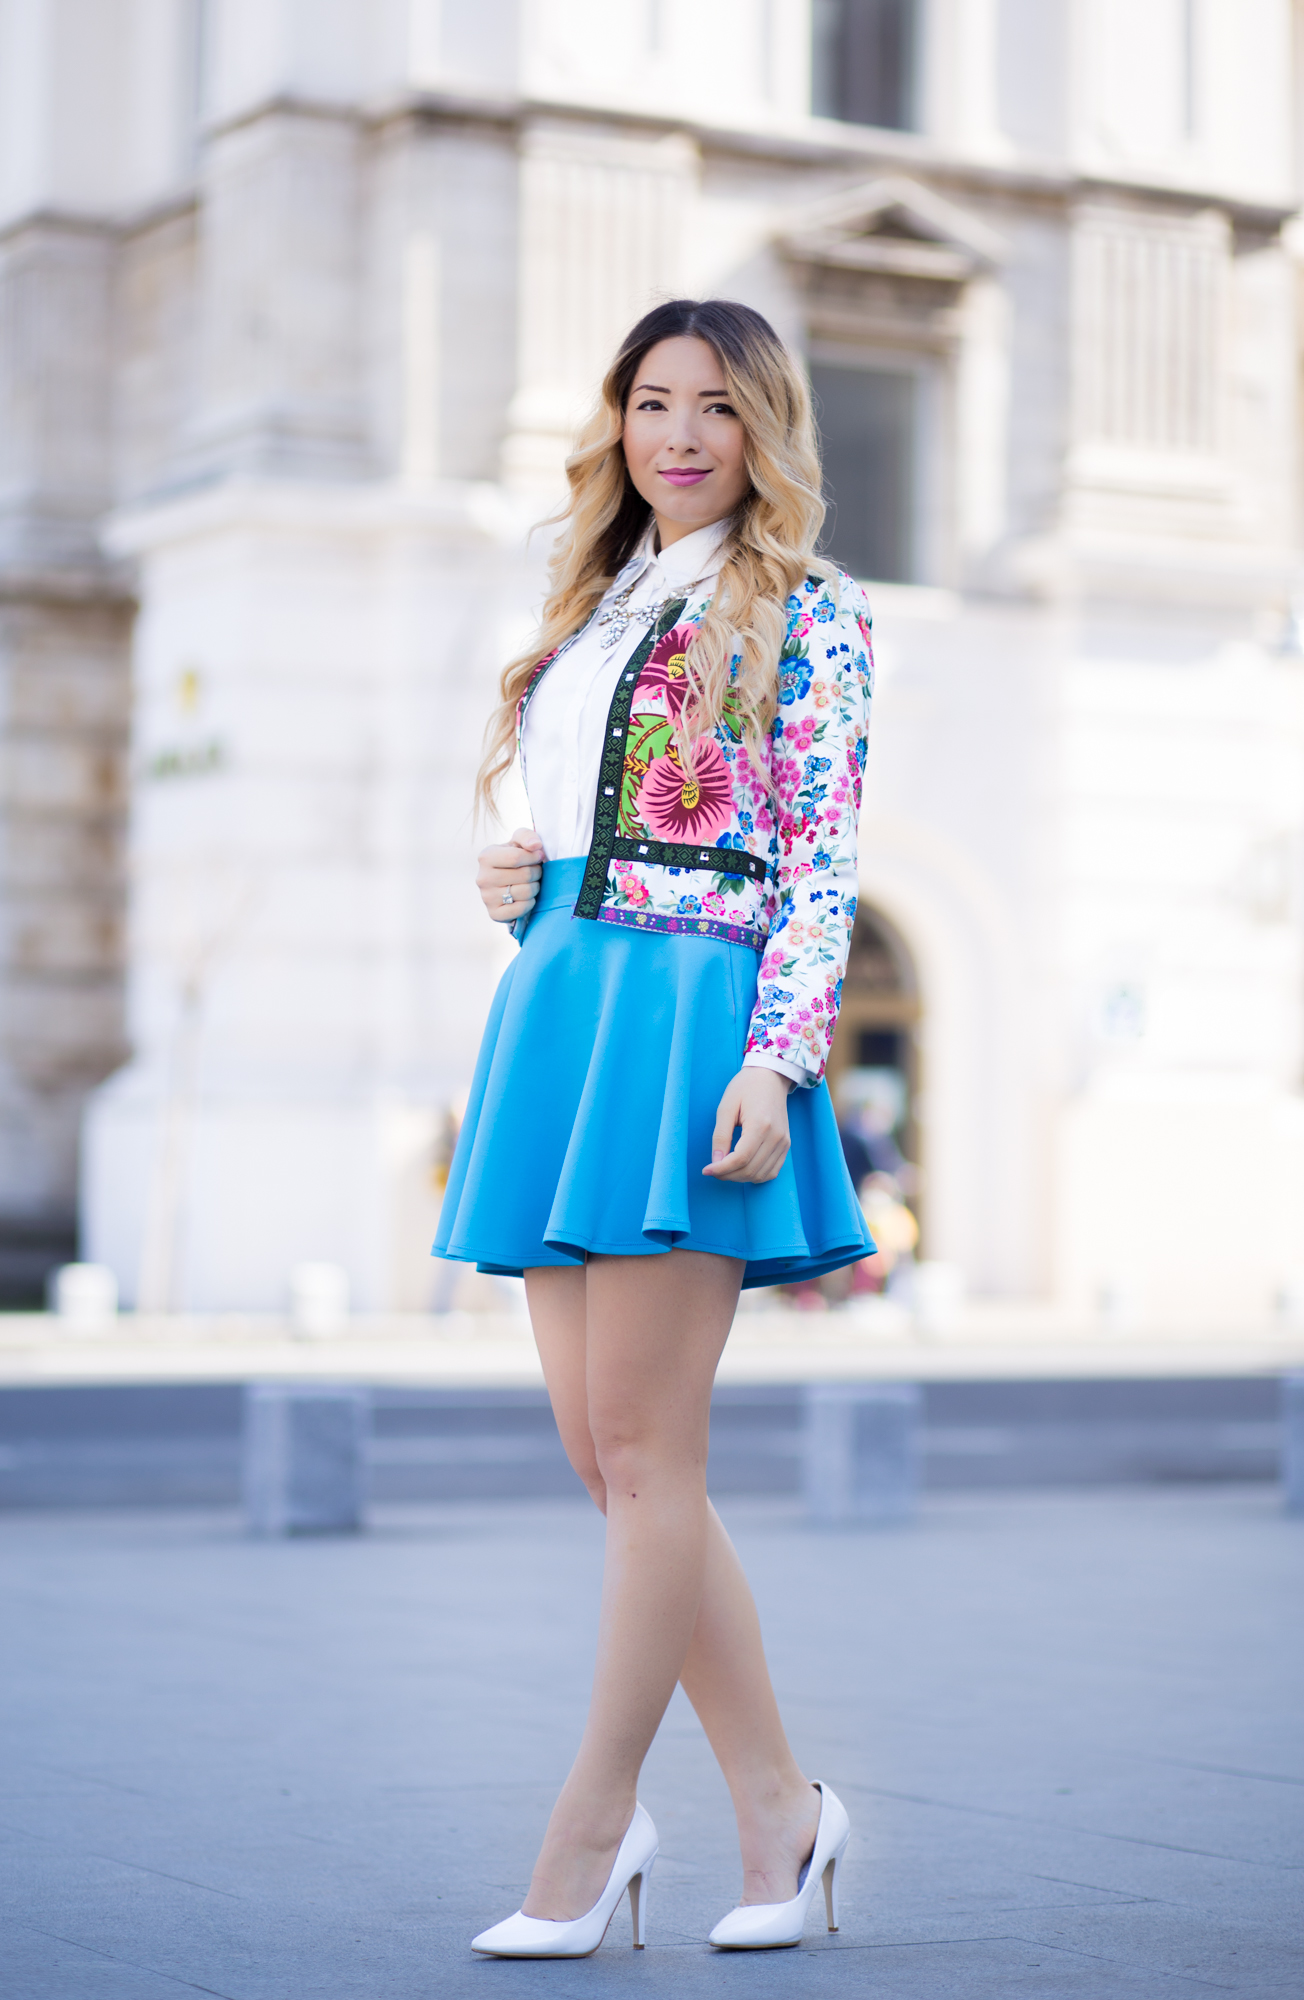 Street style in Bucharest: floral print jacket, full circle blue skirt, short skirt, white shoes, heels, spring look, outfit, fashion, Romwe, Andreea Ristea